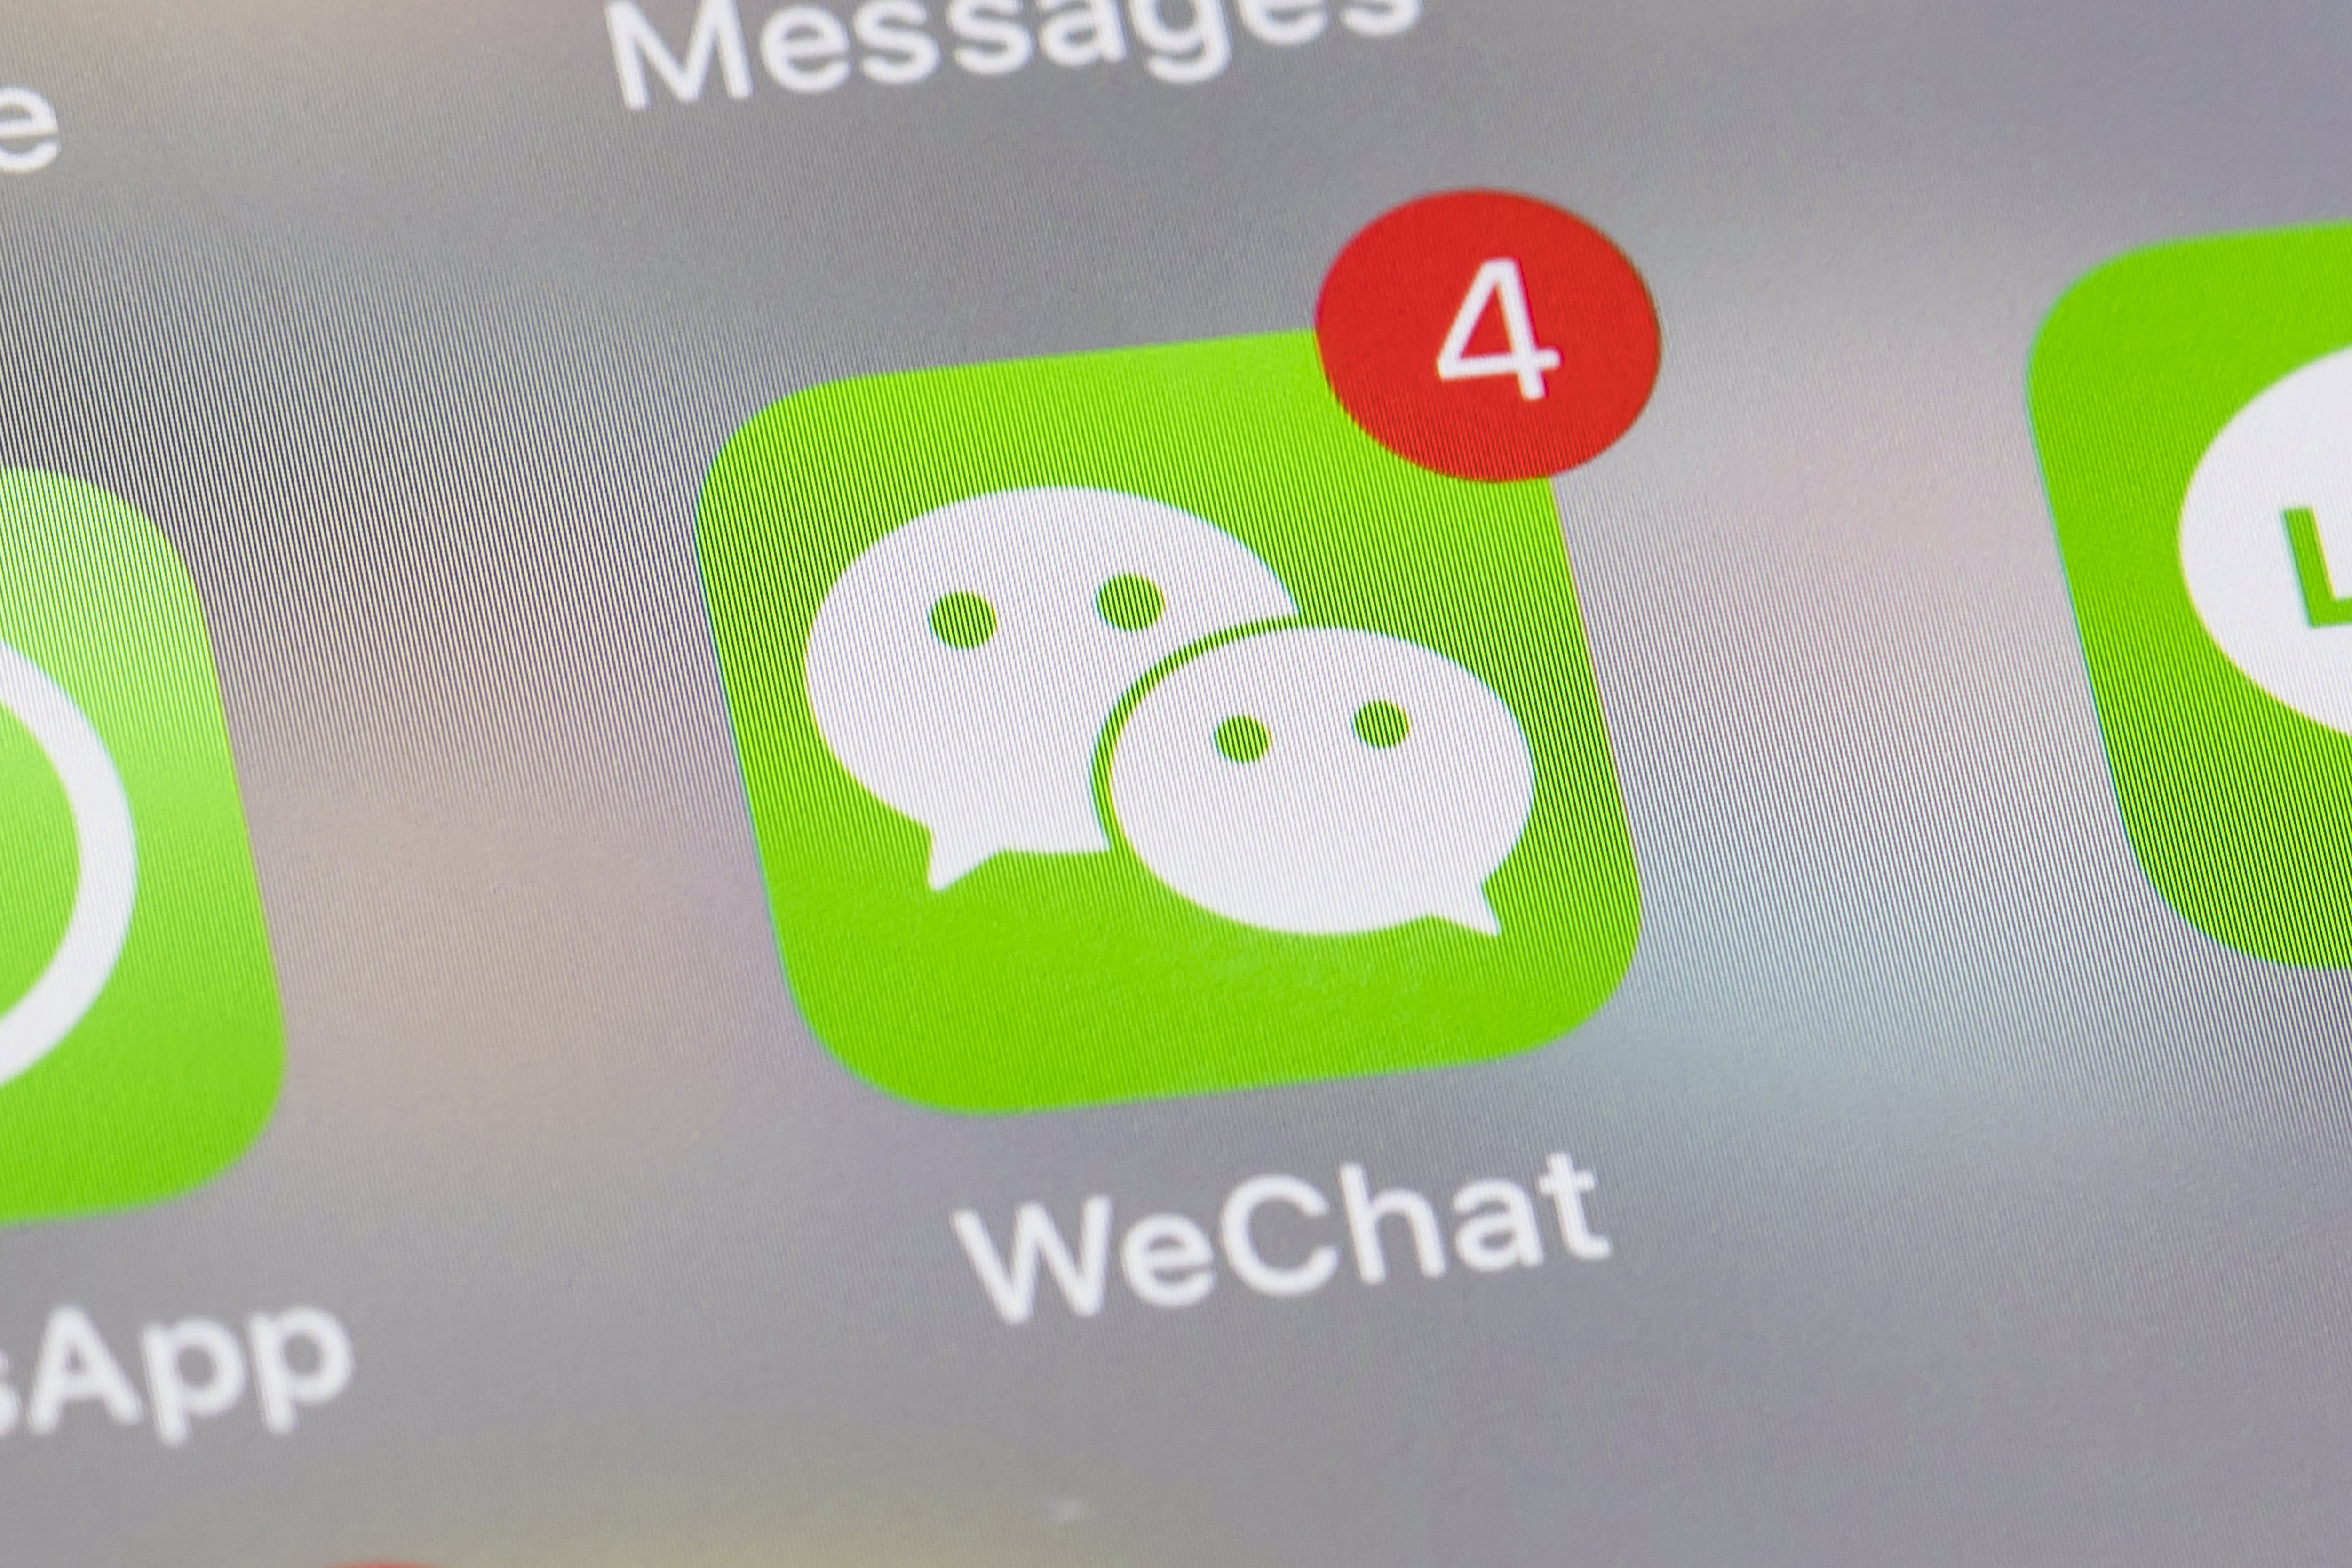 Tencent's WeChat update may pressure Apple in China